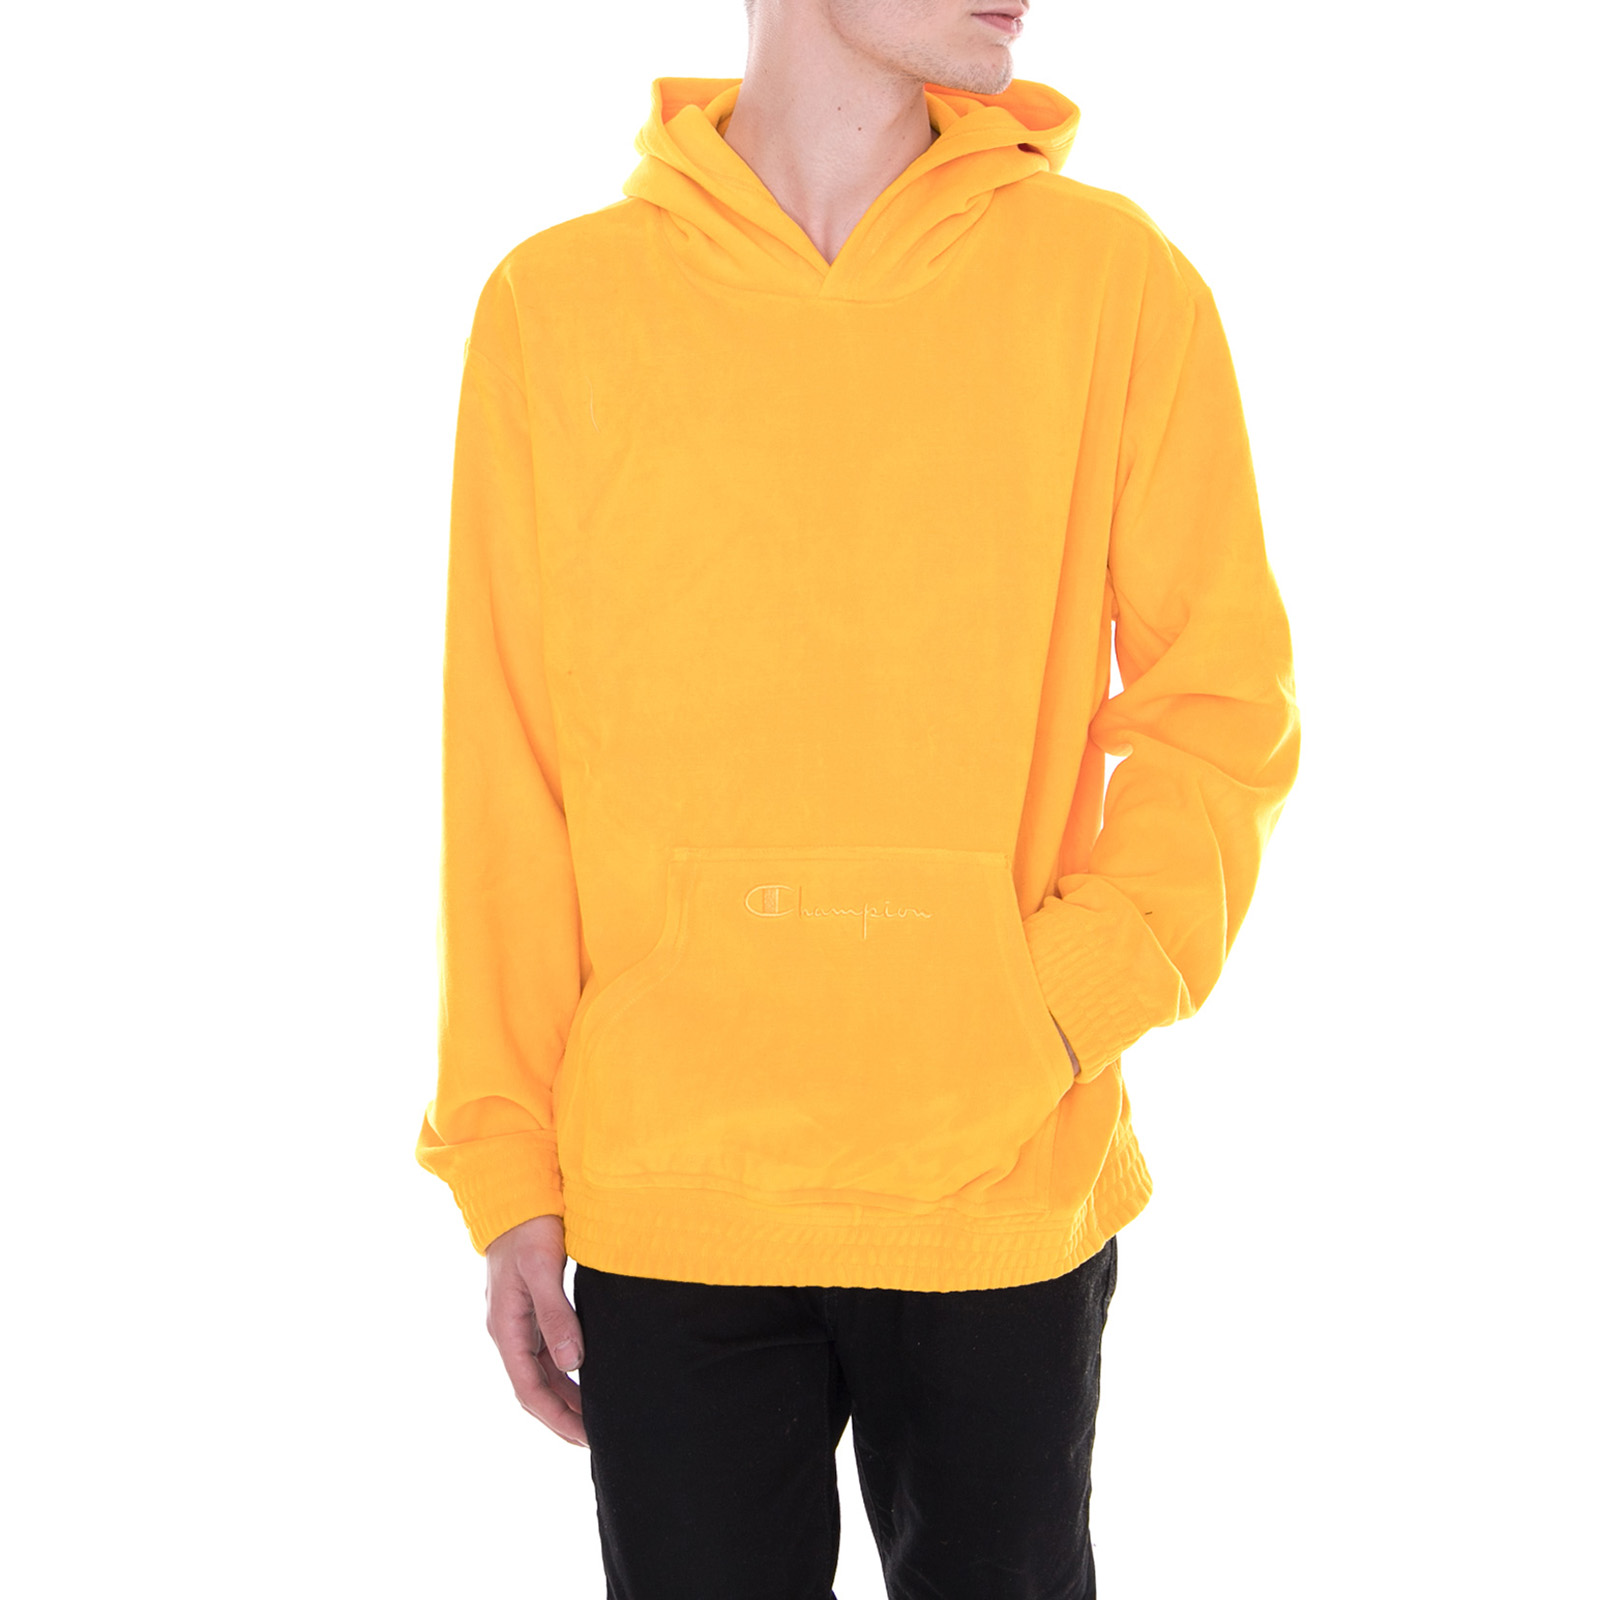 new york incredible prices shop Détails sur Champion Sweatshirts Pull À Capuche Jaune Jaune